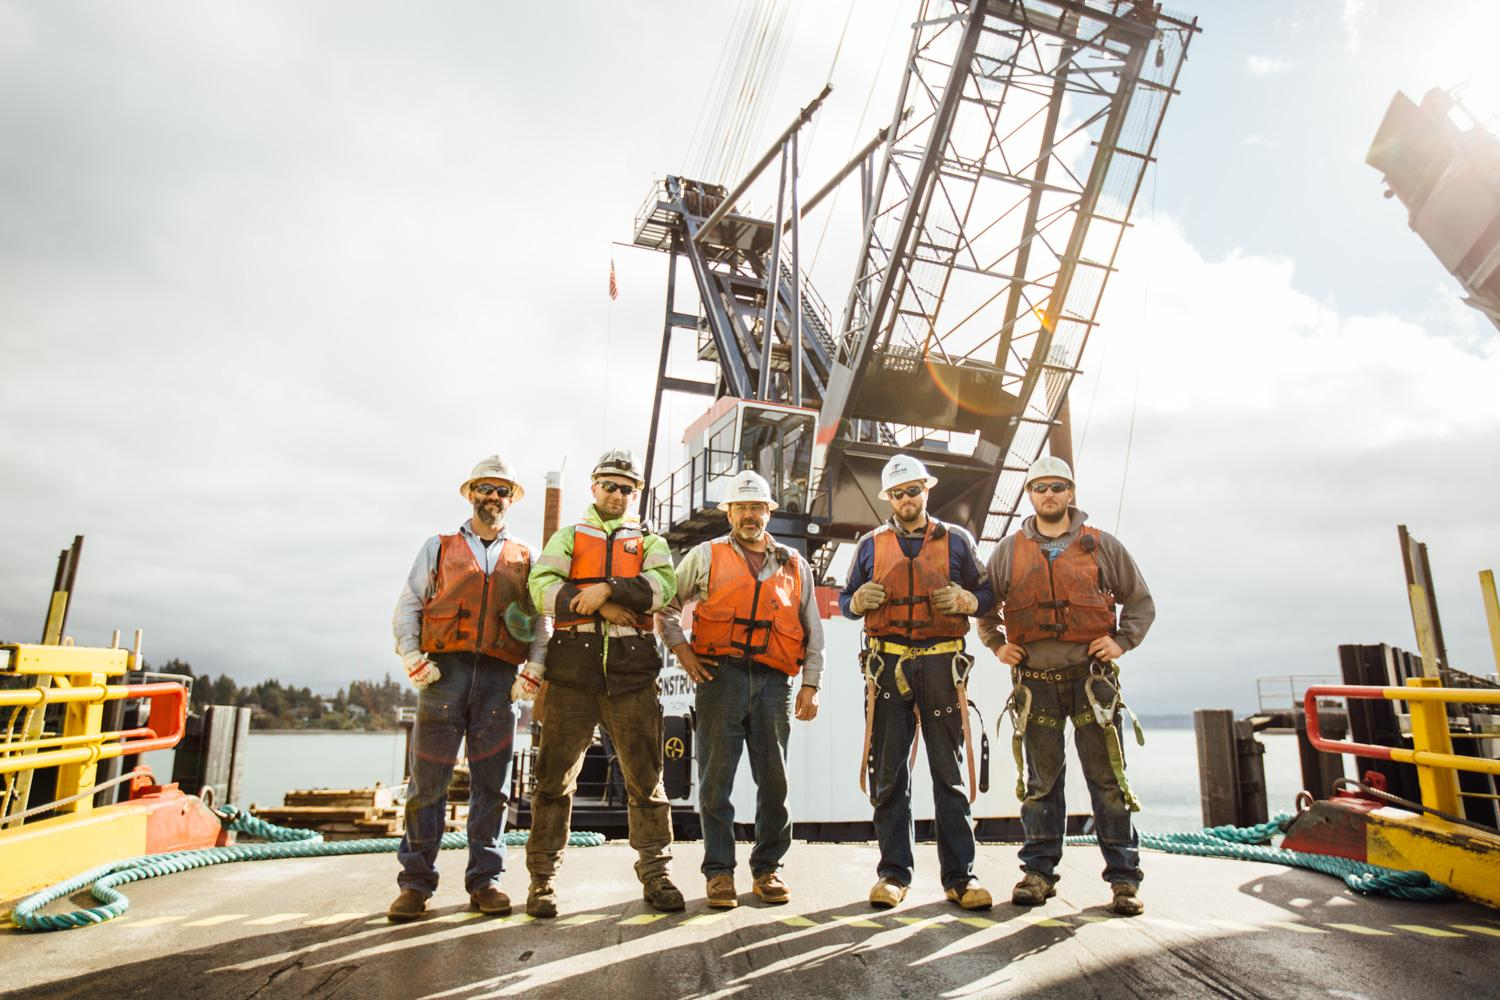 Group photo of American Construction employees